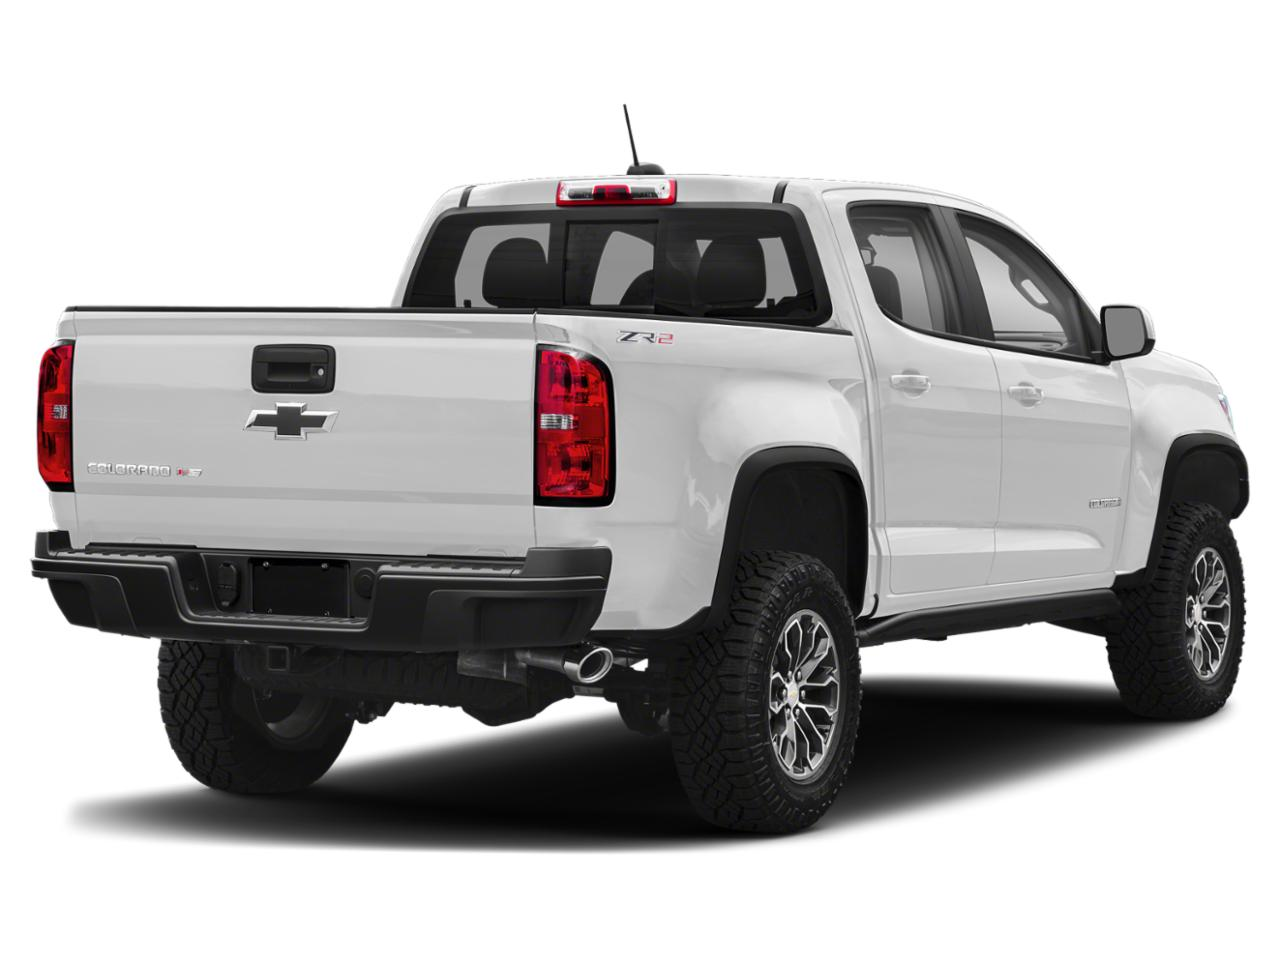 Learn About This 2020 Chevrolet Colorado For Sale in ...